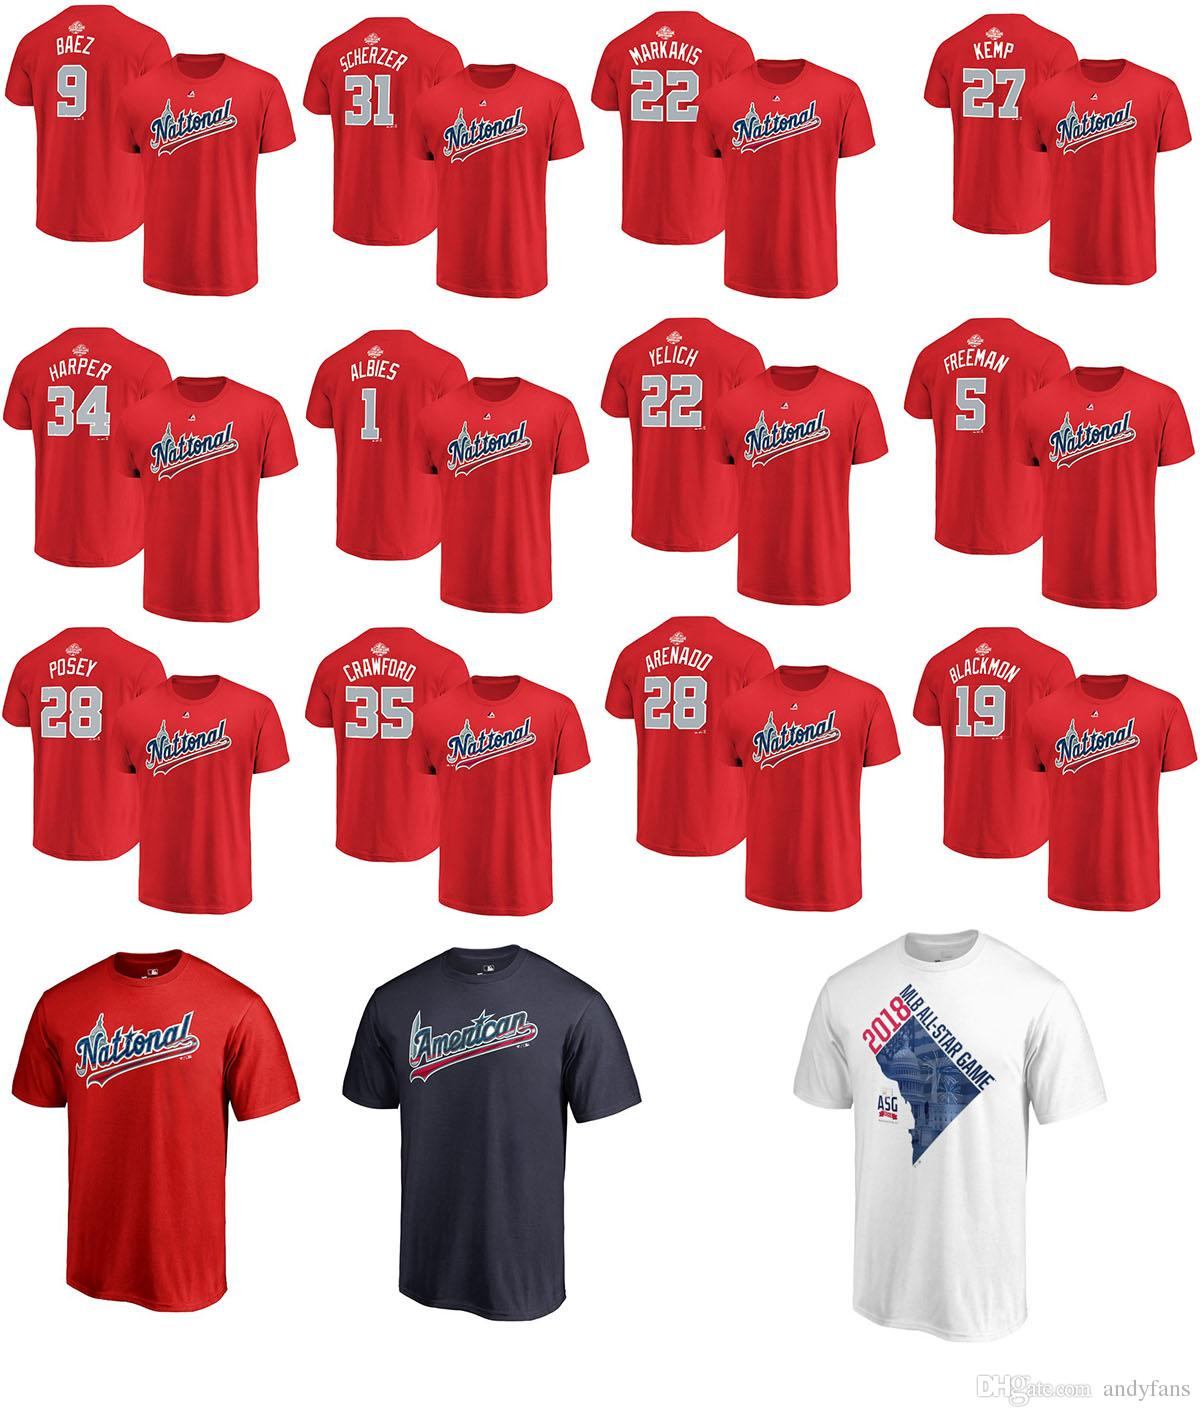 17f3eeef128 2018 Baseball All Star Game T Shirt National League Baez Arenado Yelich  Albies Scherzer Crawford Posey Kemp Freeman Harper Name   Number Tee White  Shirt Tee ...